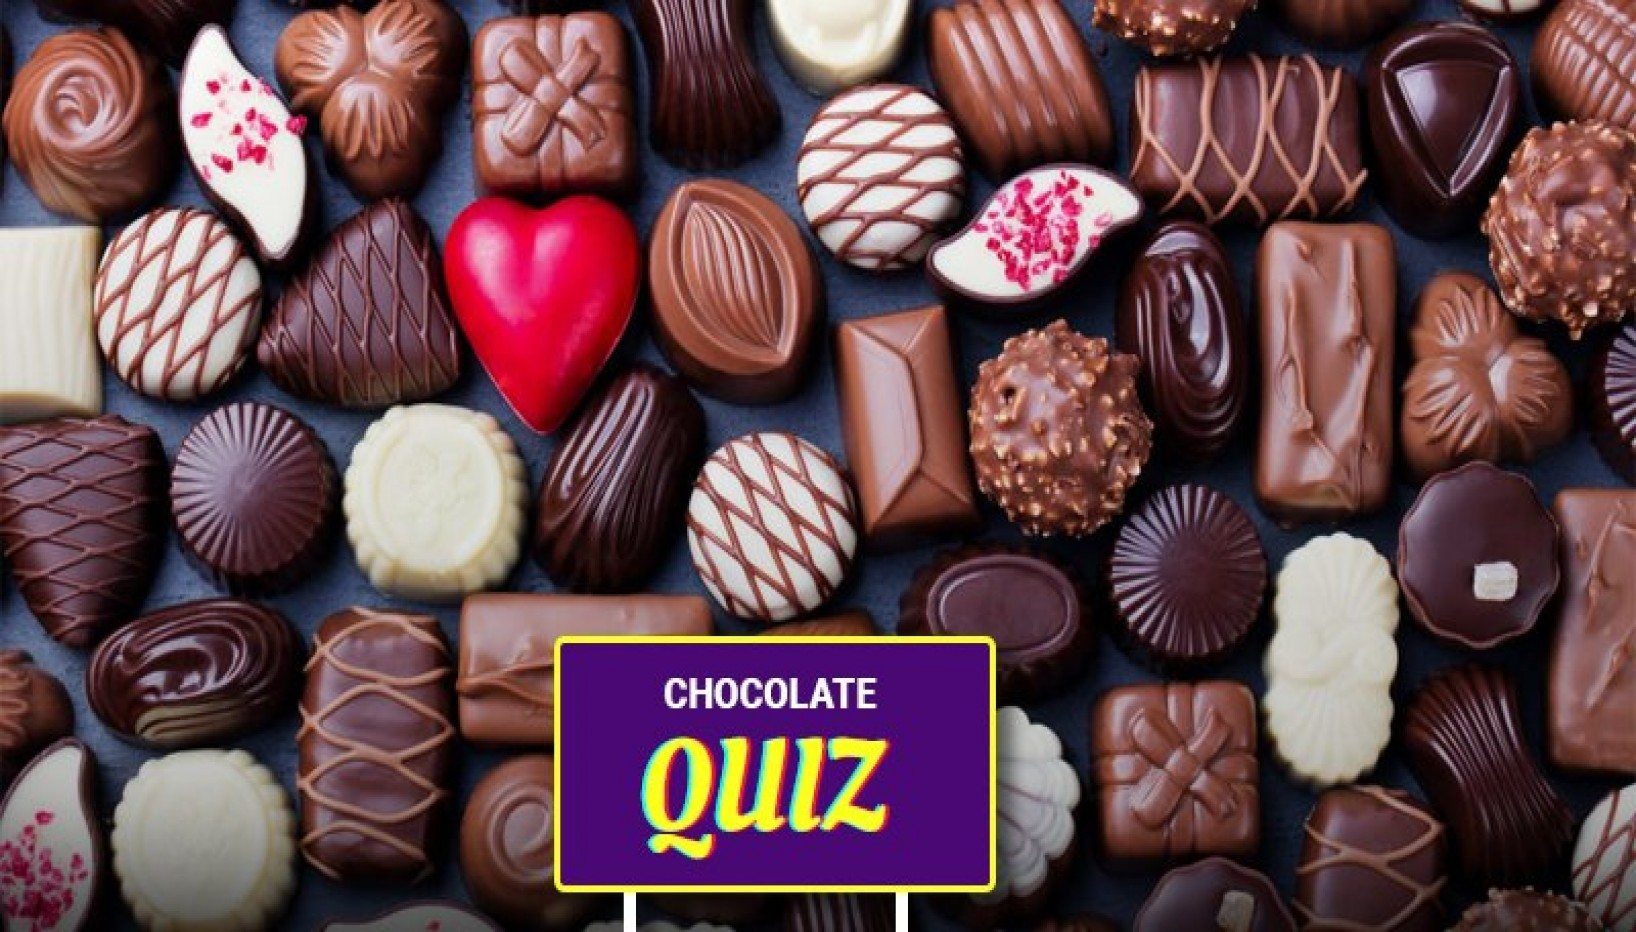 Only True Chocolate Connoisseurs Can Get A 10/10 On This Chocolate Quiz